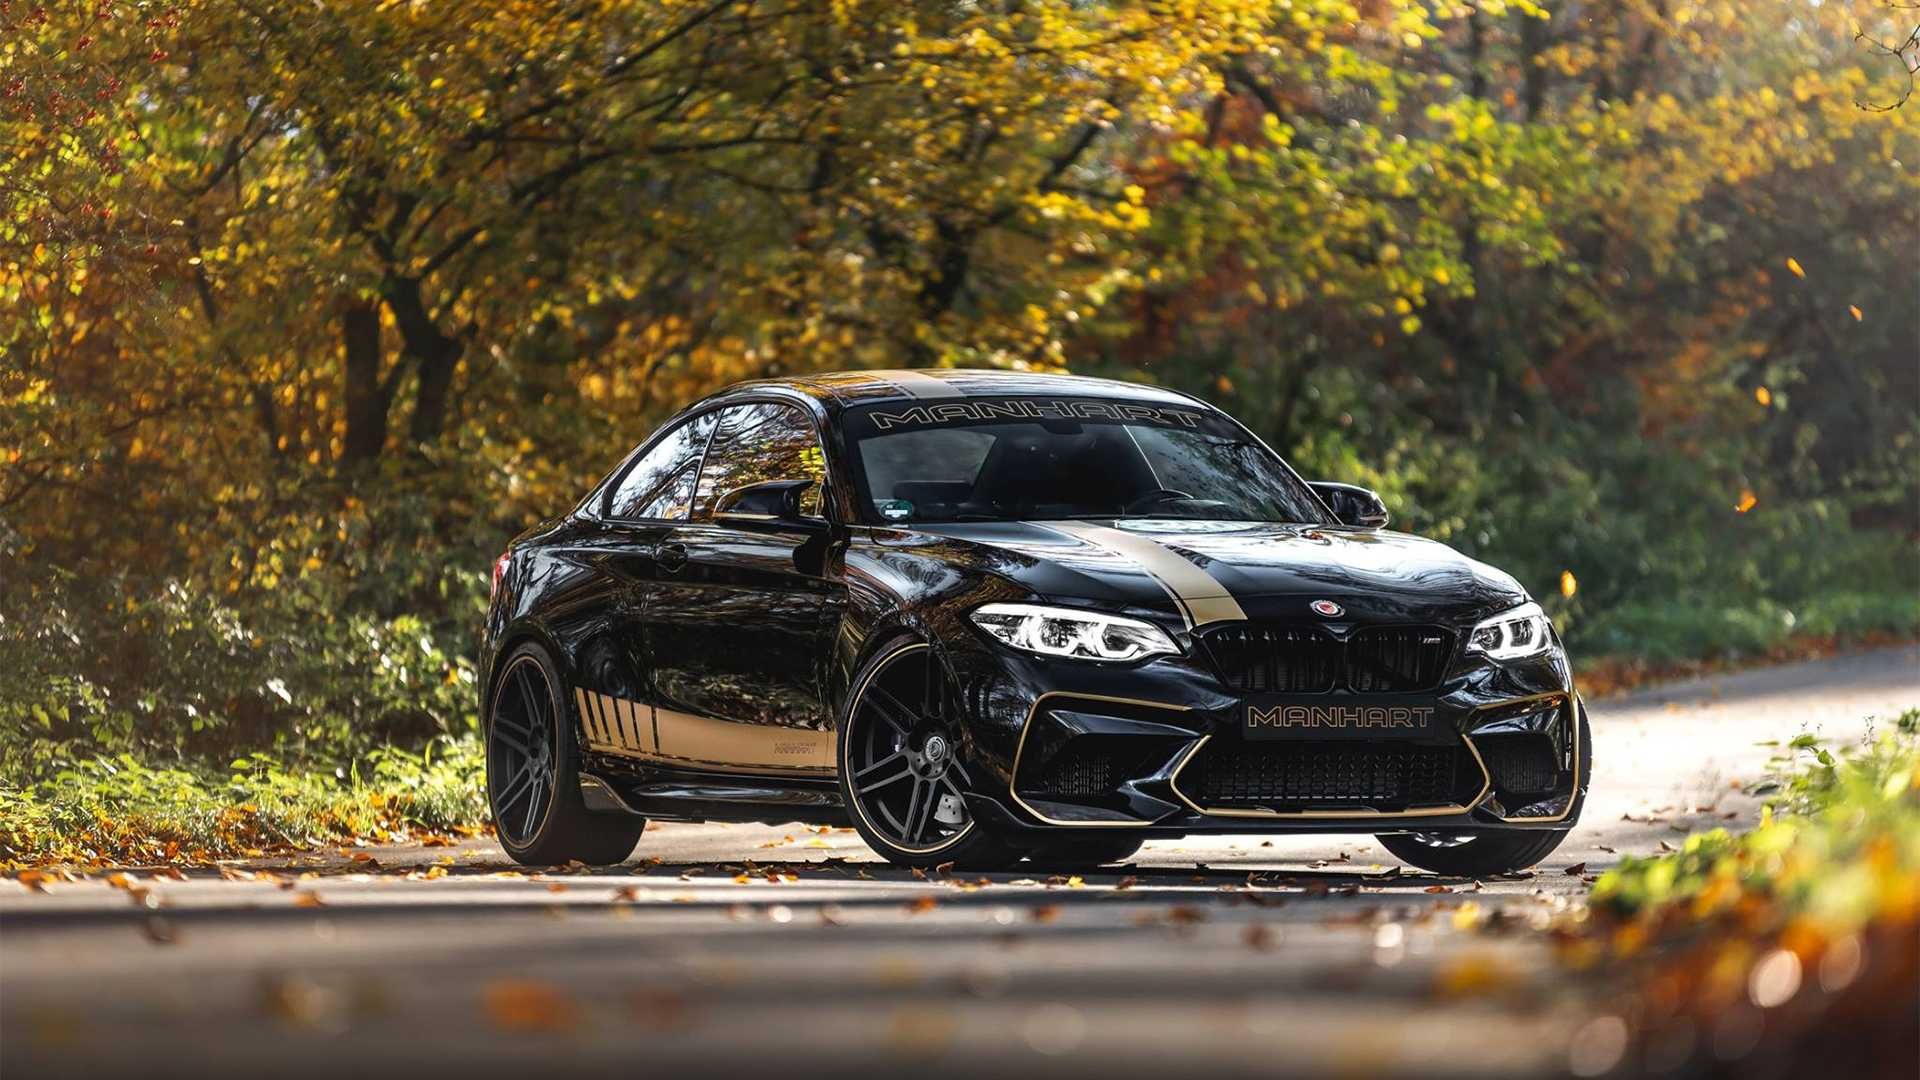 The Manhart MH2 550 Is A BMW M2 Competition On Steroids